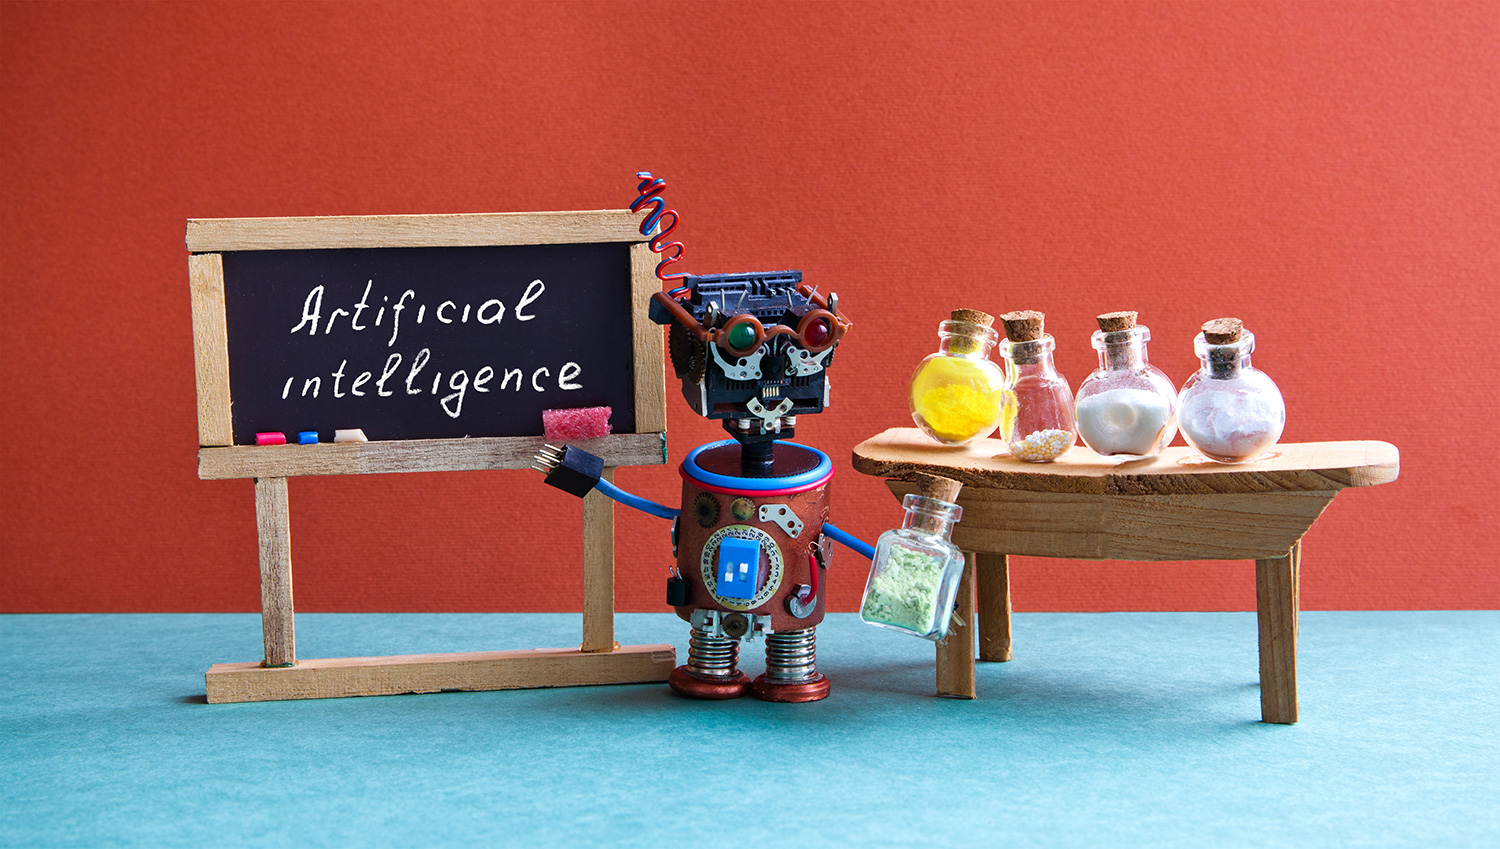 beginnen met machine learning starten